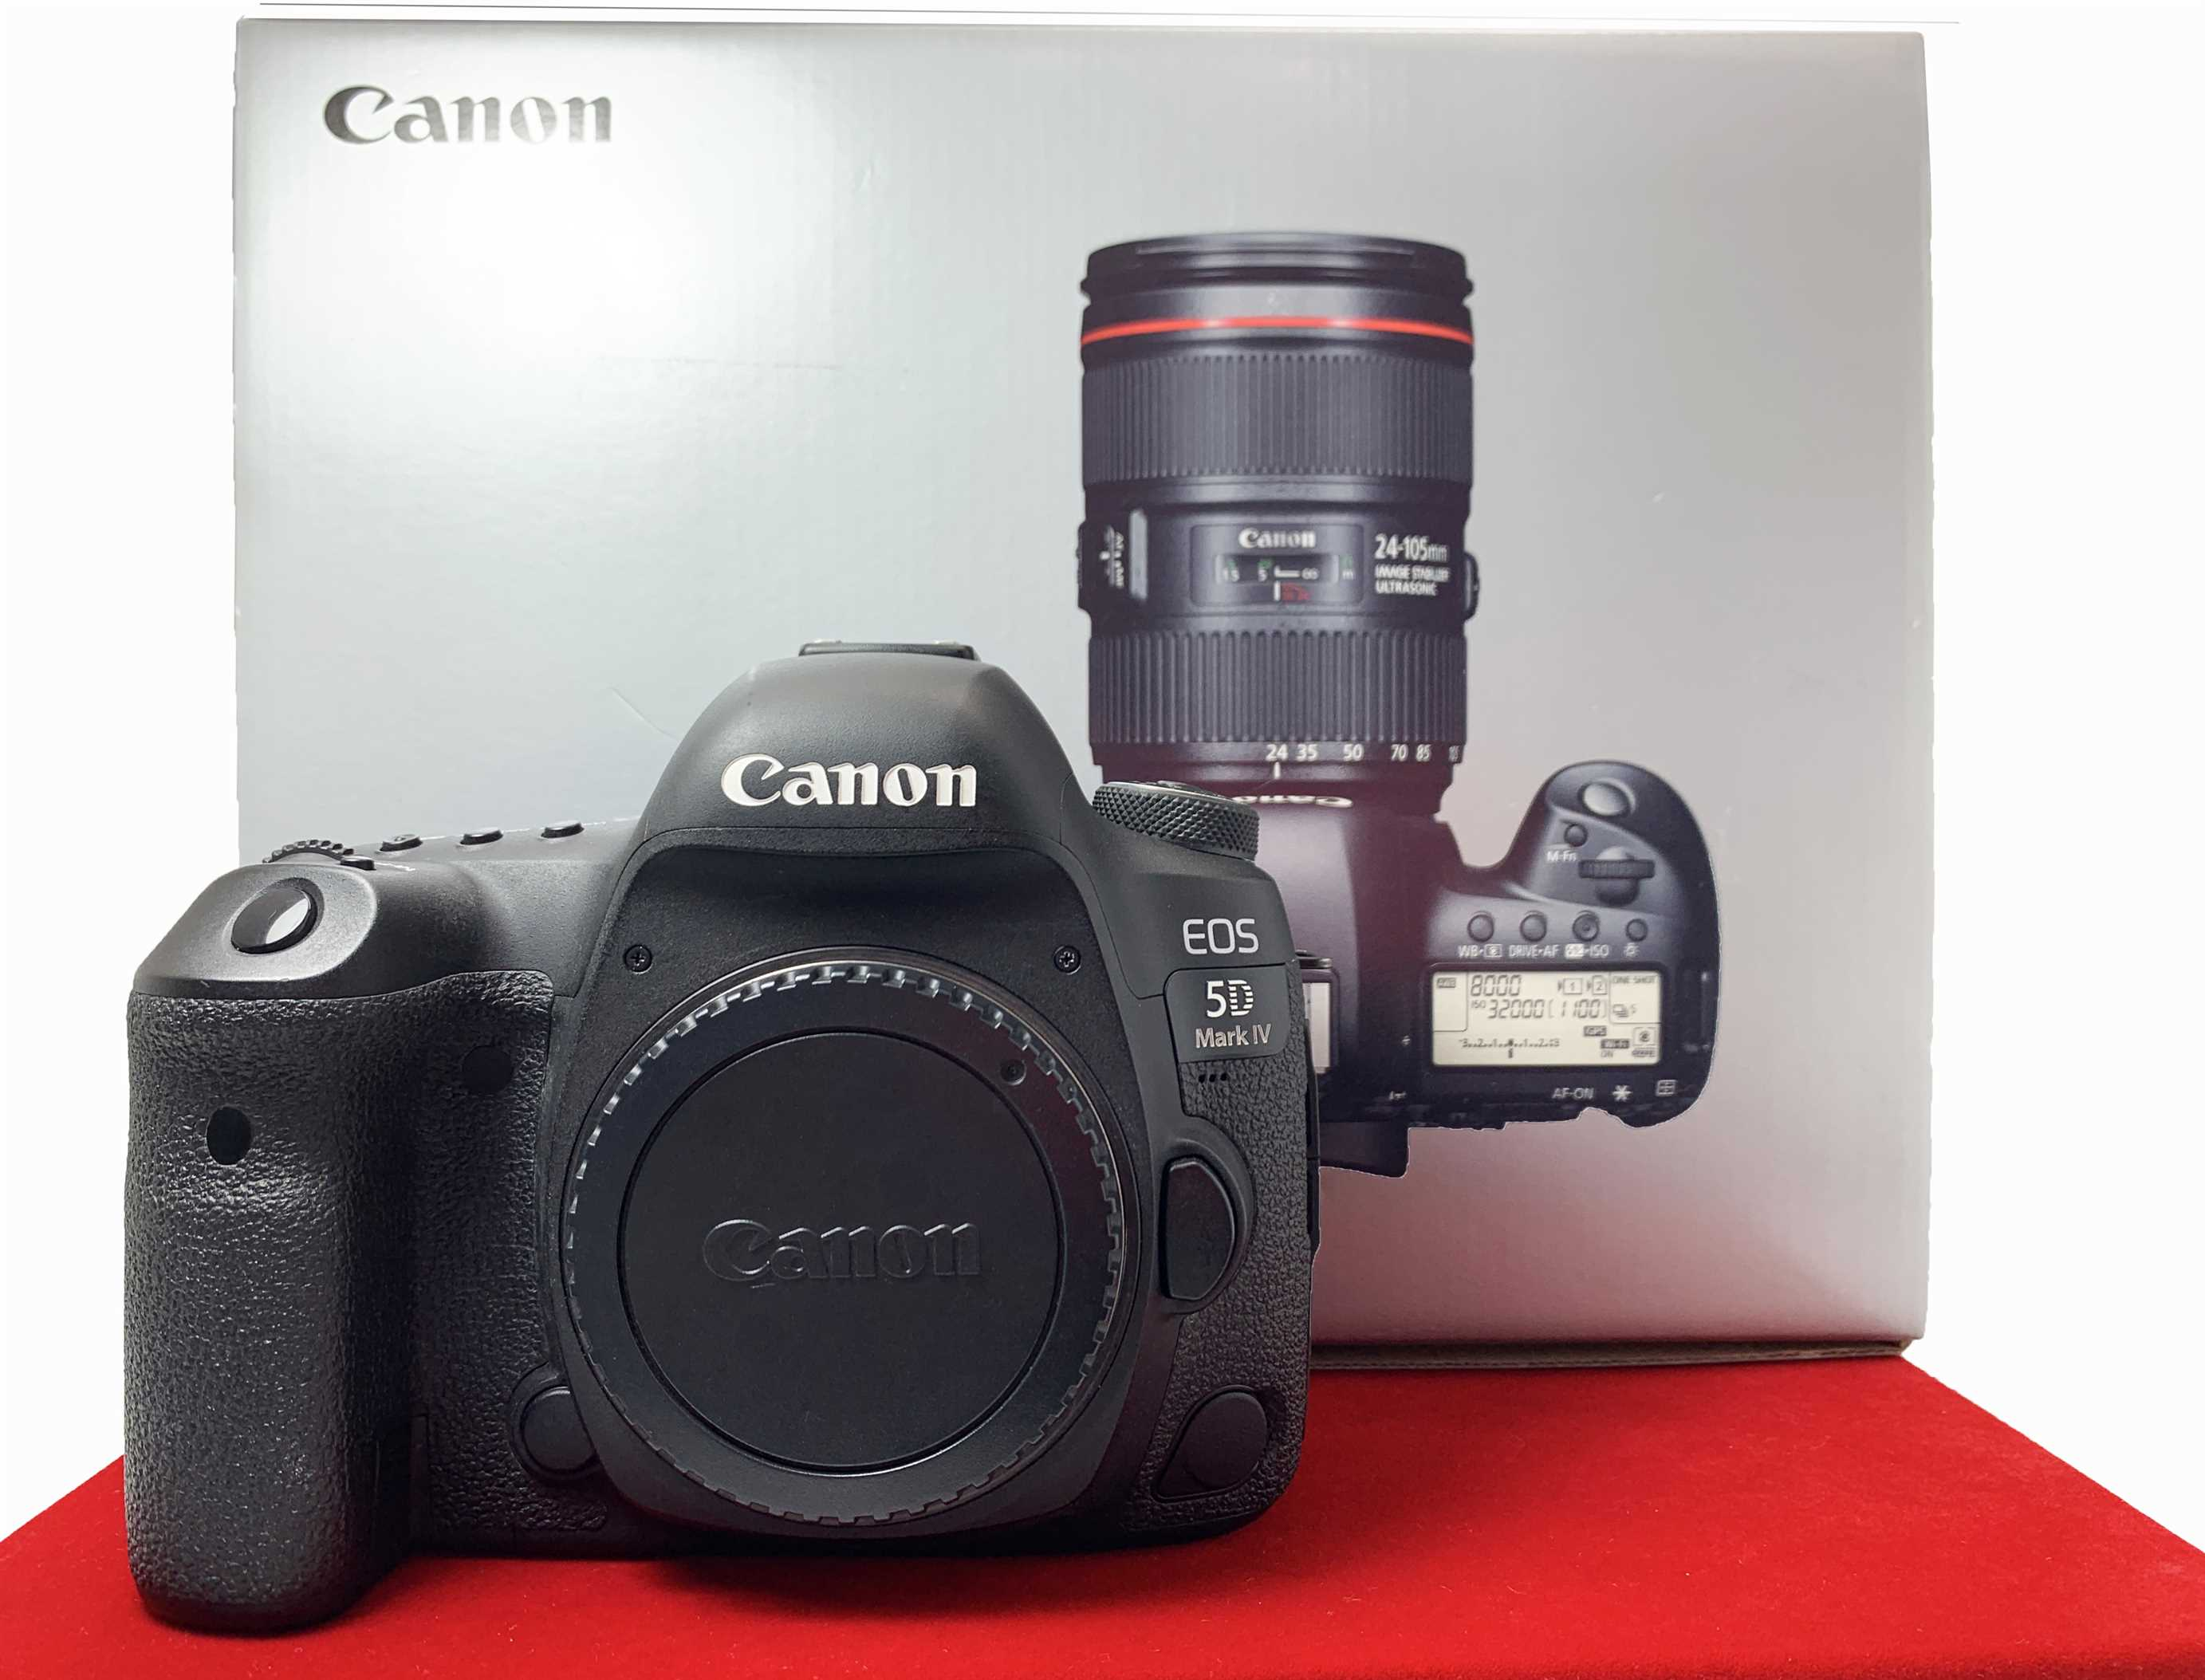 [USED-PJ33] Canon EOS 5D MARK IV Camera Body (SC:43K), 90% Like New Condition (S/N:078053004507)